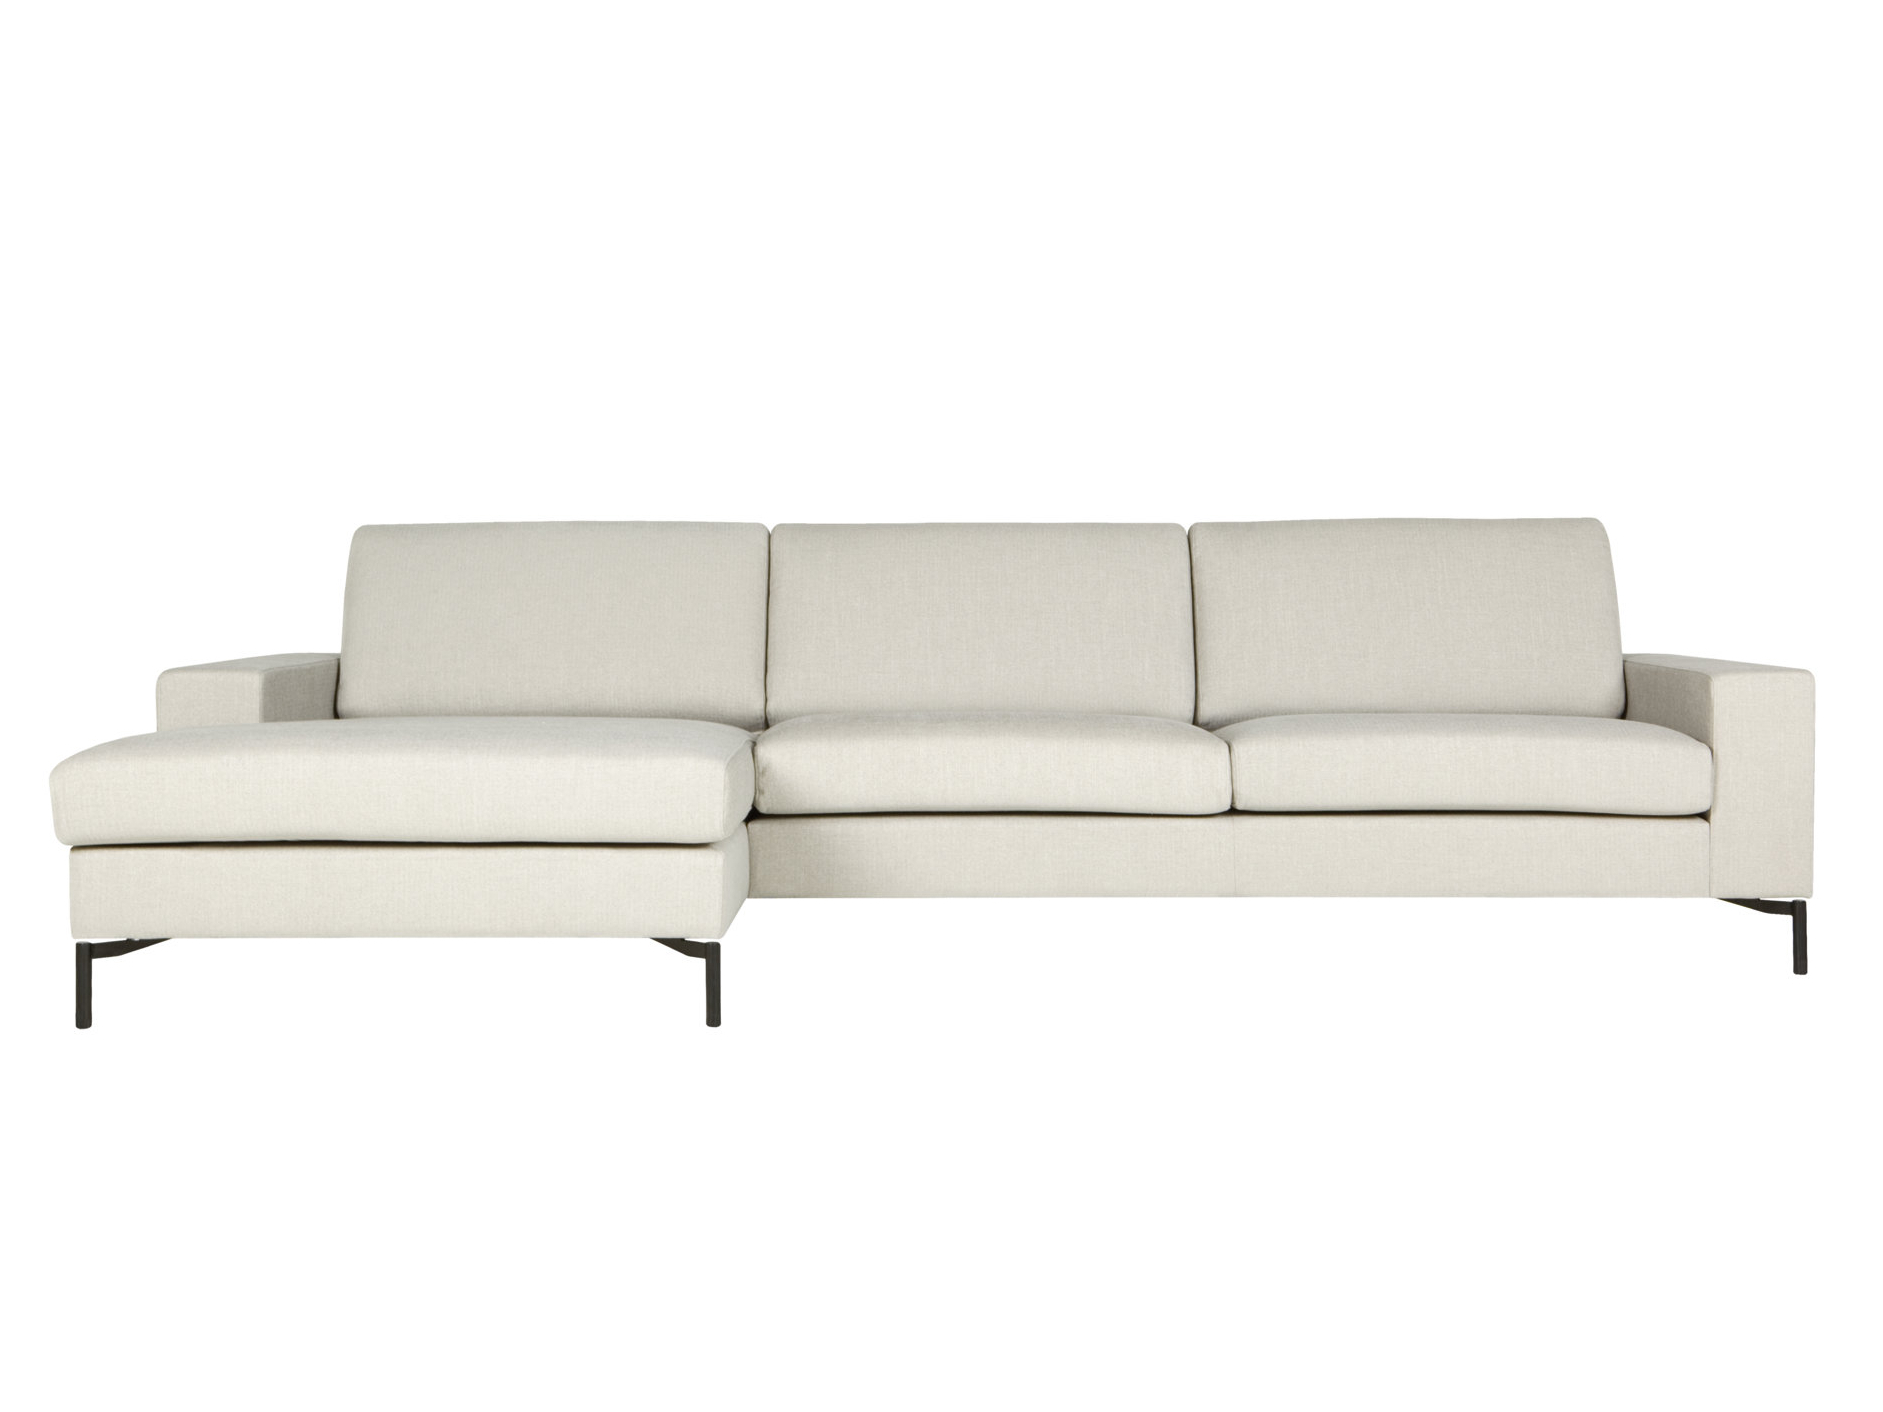 Quattro sofa with chaise longue quattro collection by sits - Chaise longue d interieur ...